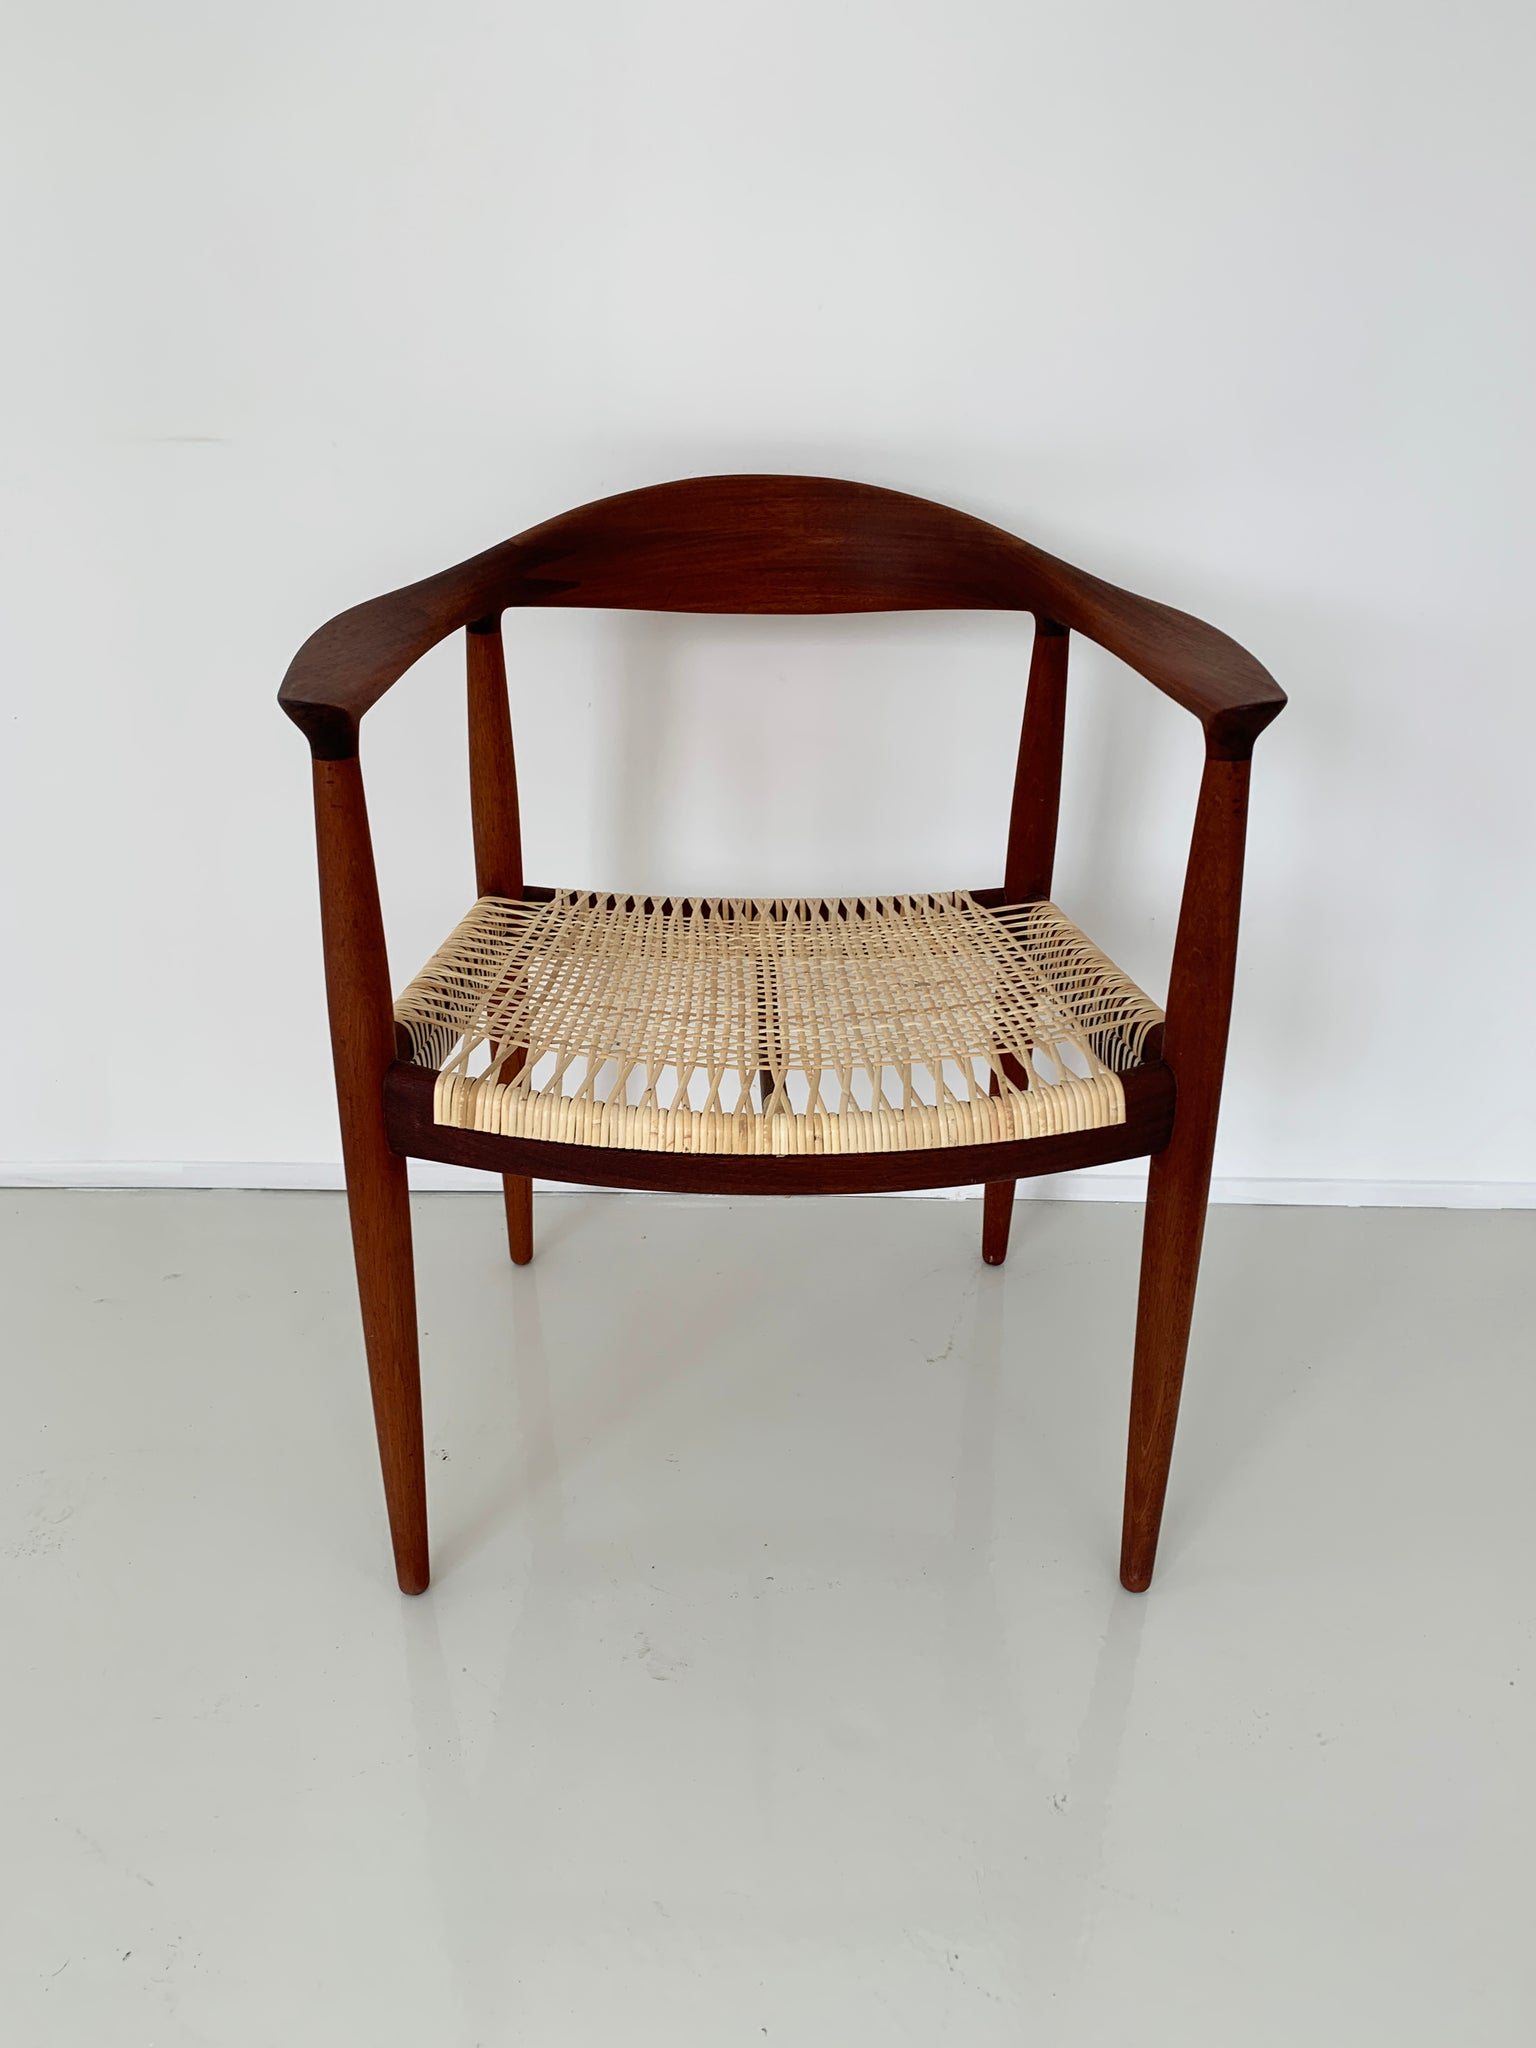 Hans Wegner Round Chairs, PP 501 by PP Mobler